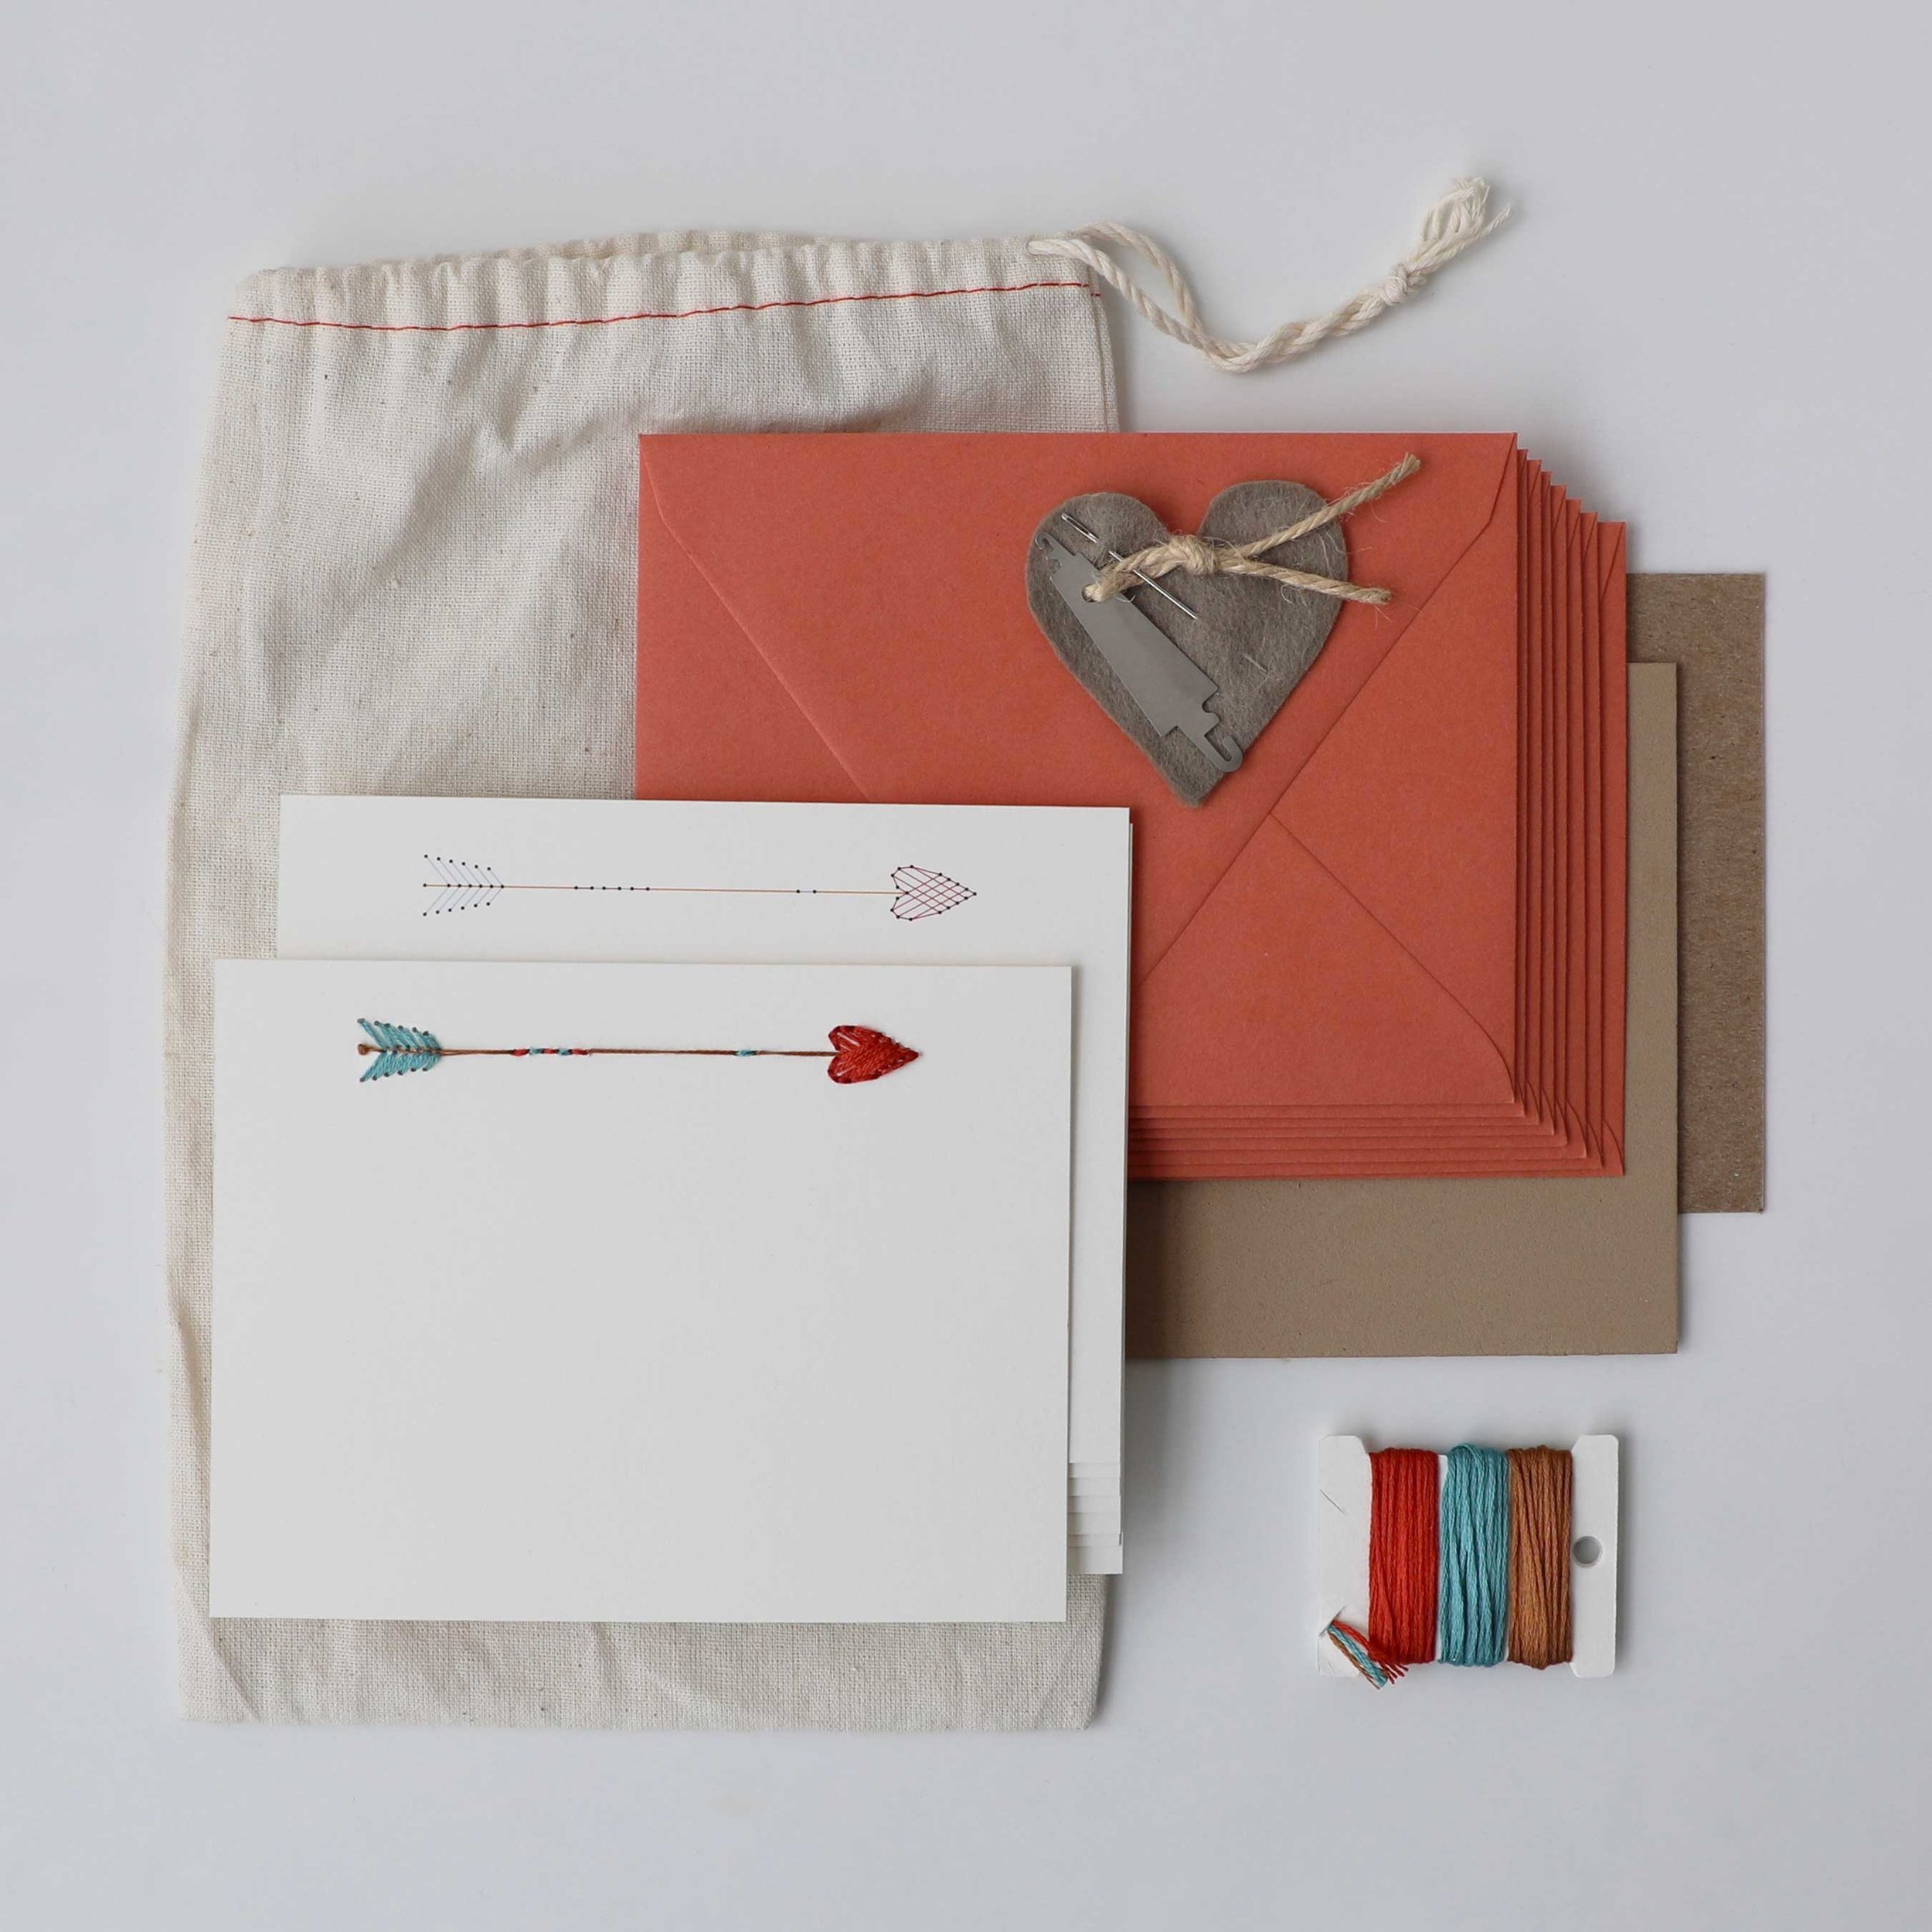 Love + Arrow Embroidered Greeting Card Kit $18